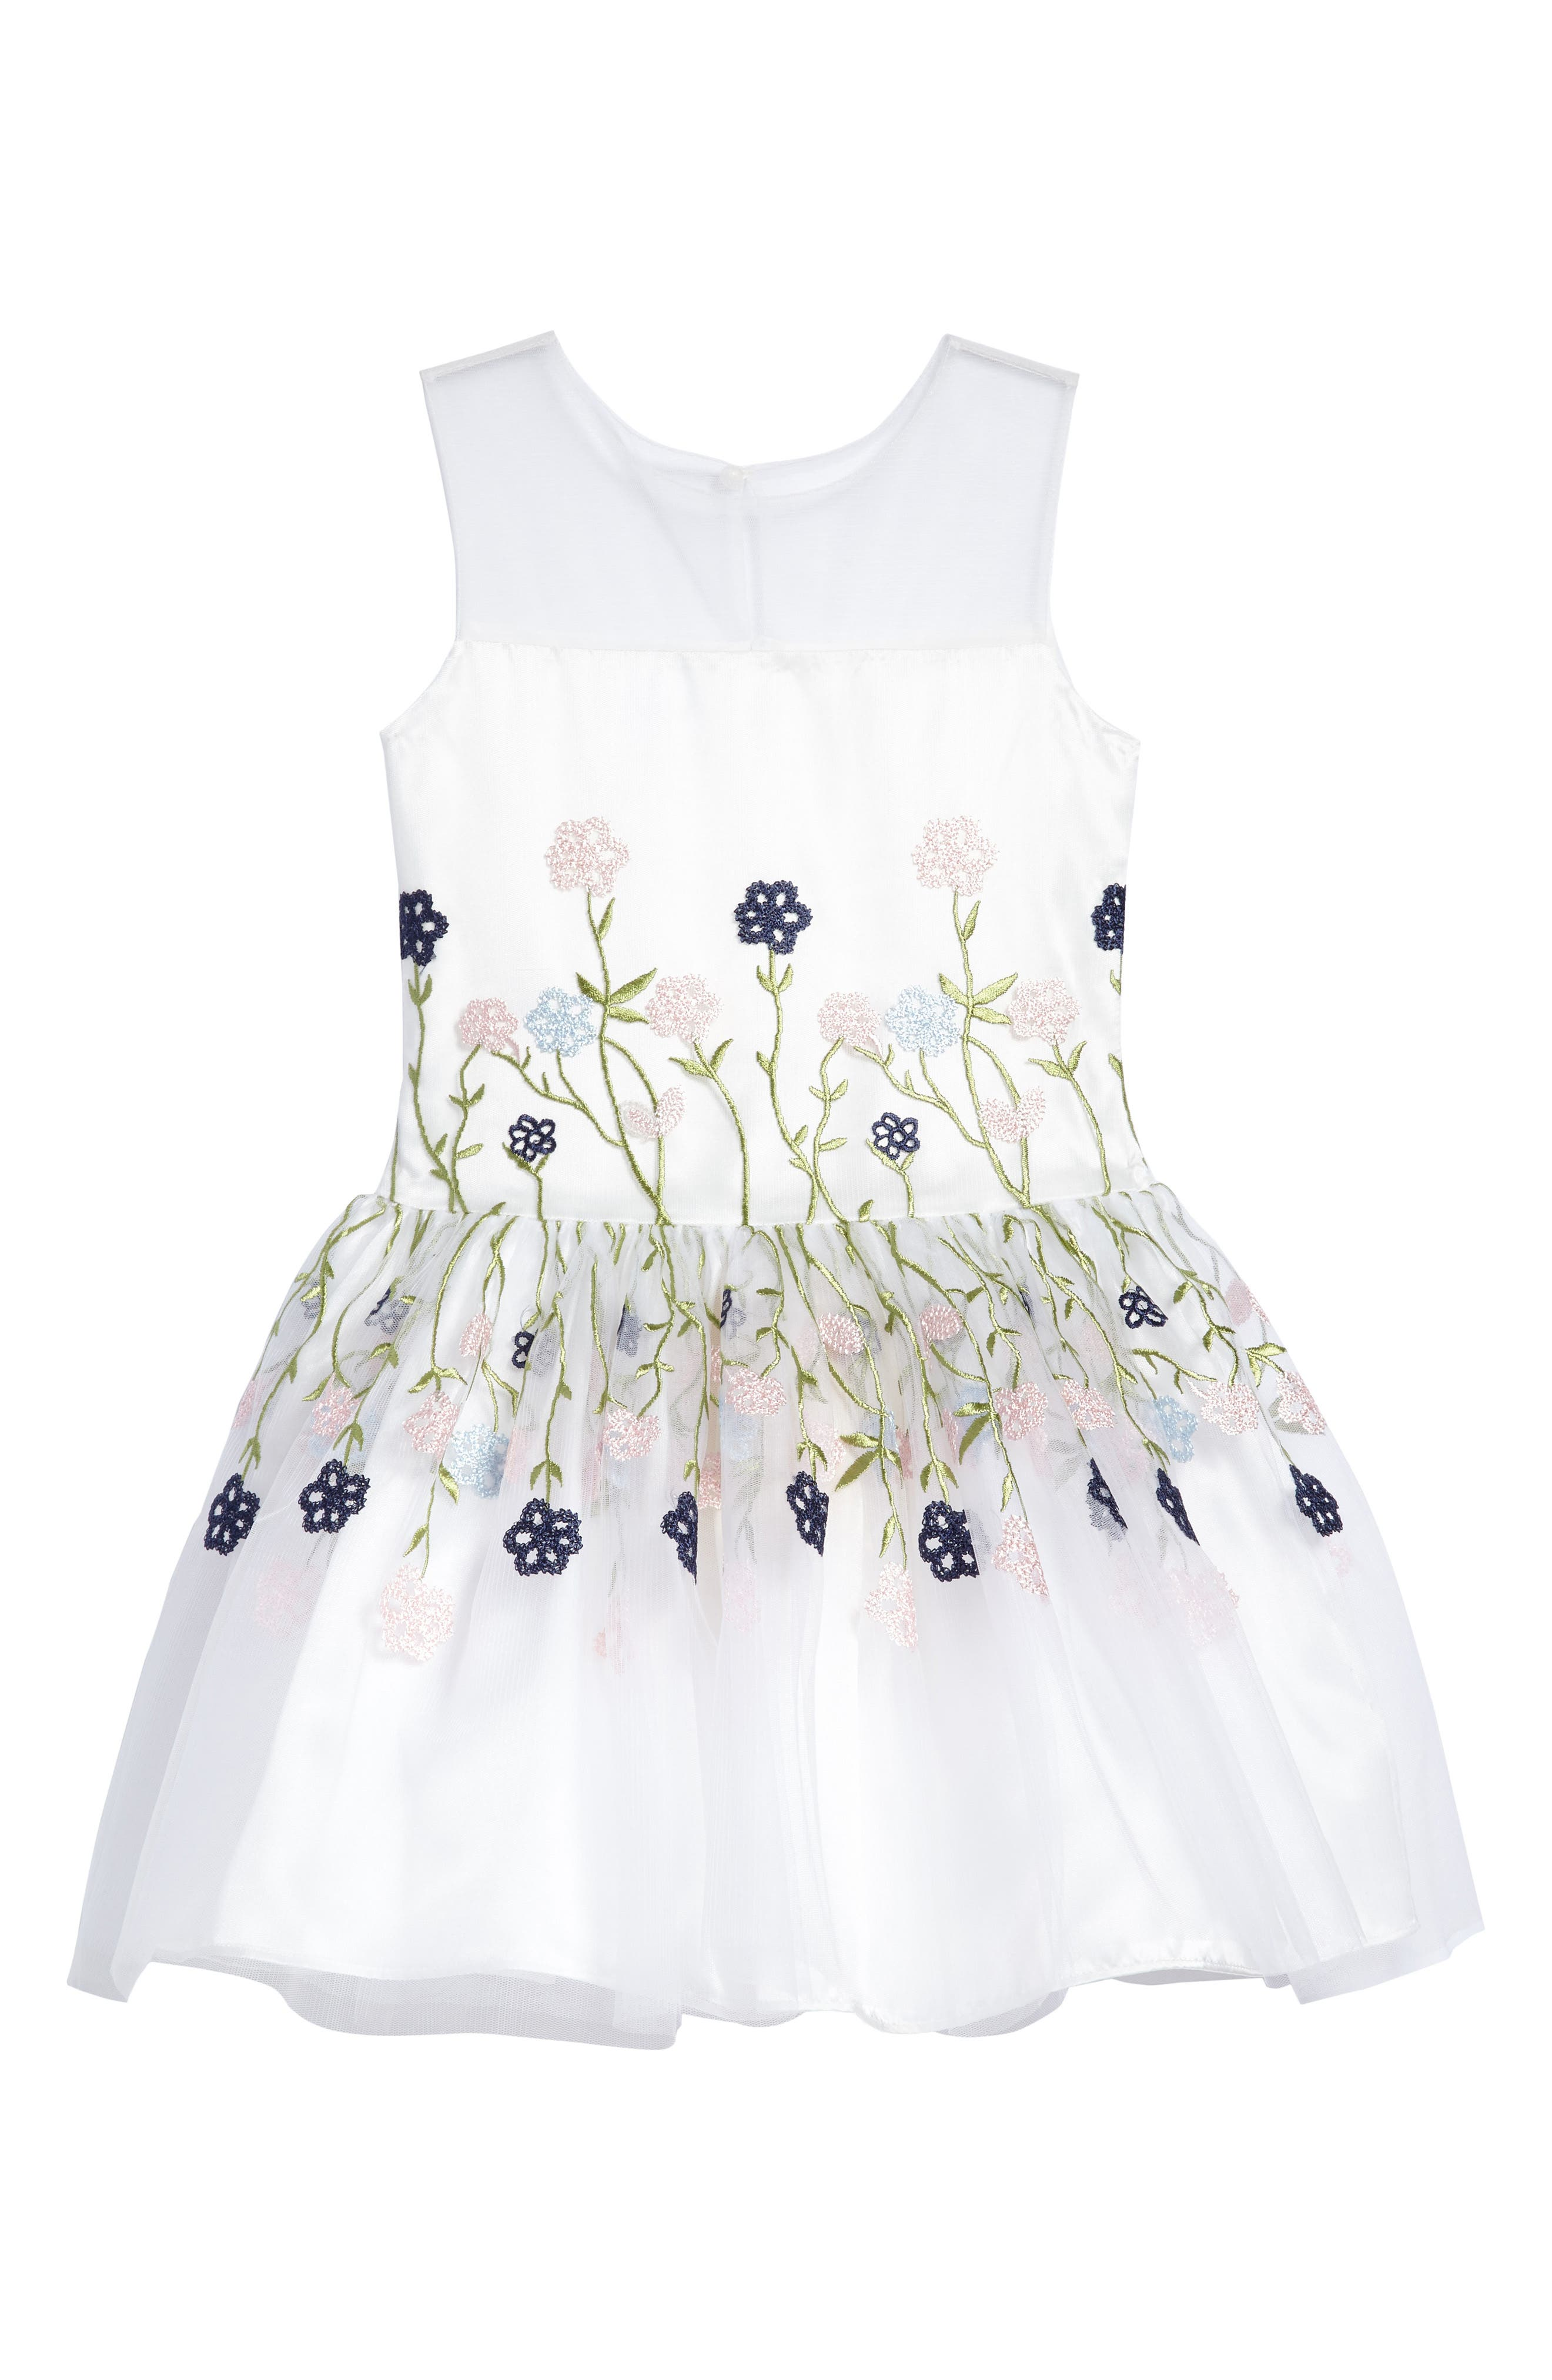 Floral Embroidered Dress,                         Main,                         color, White